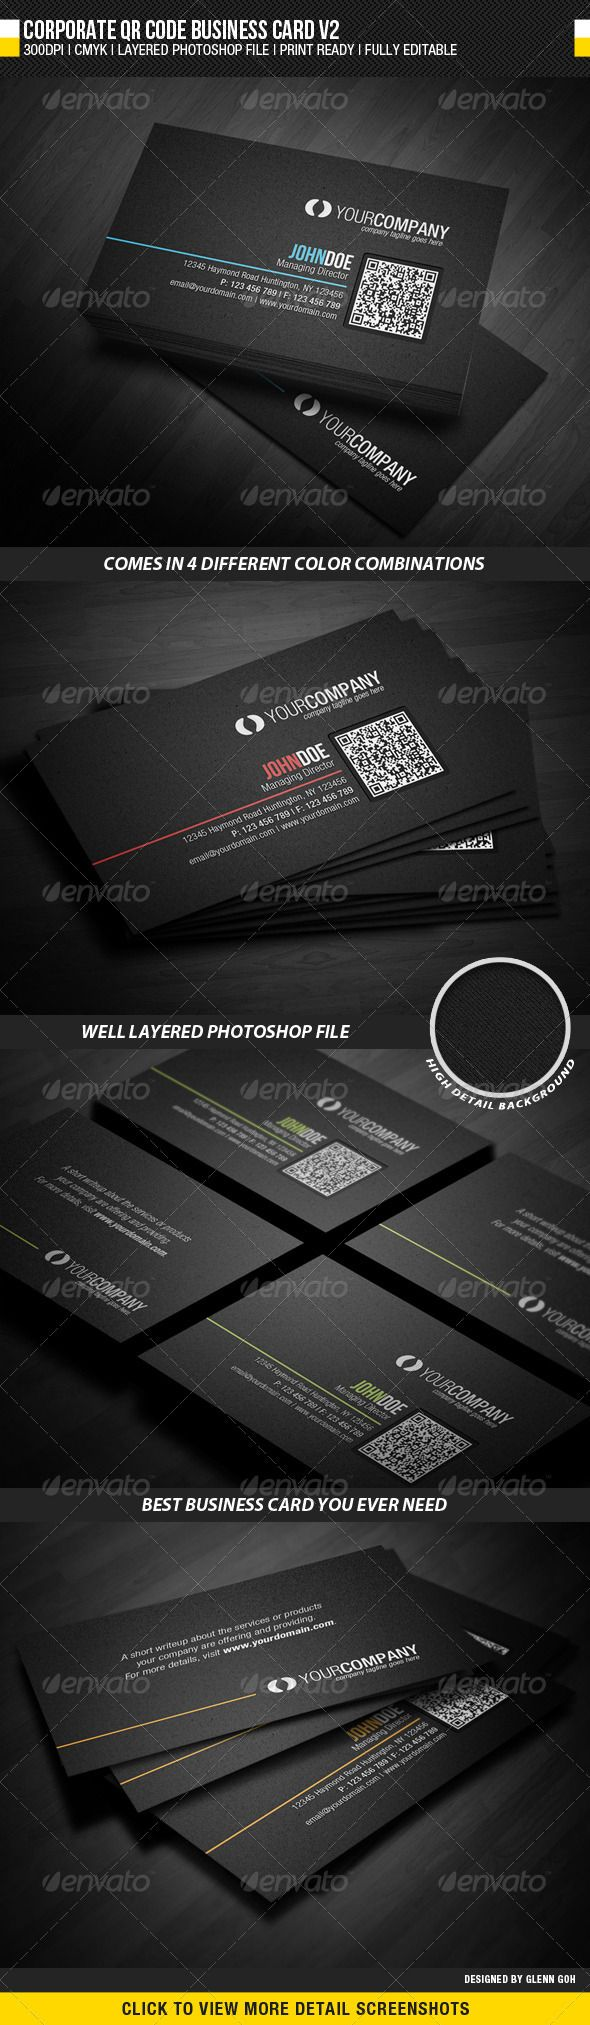 52 best Best Business Cards images on Pinterest | Business card ...